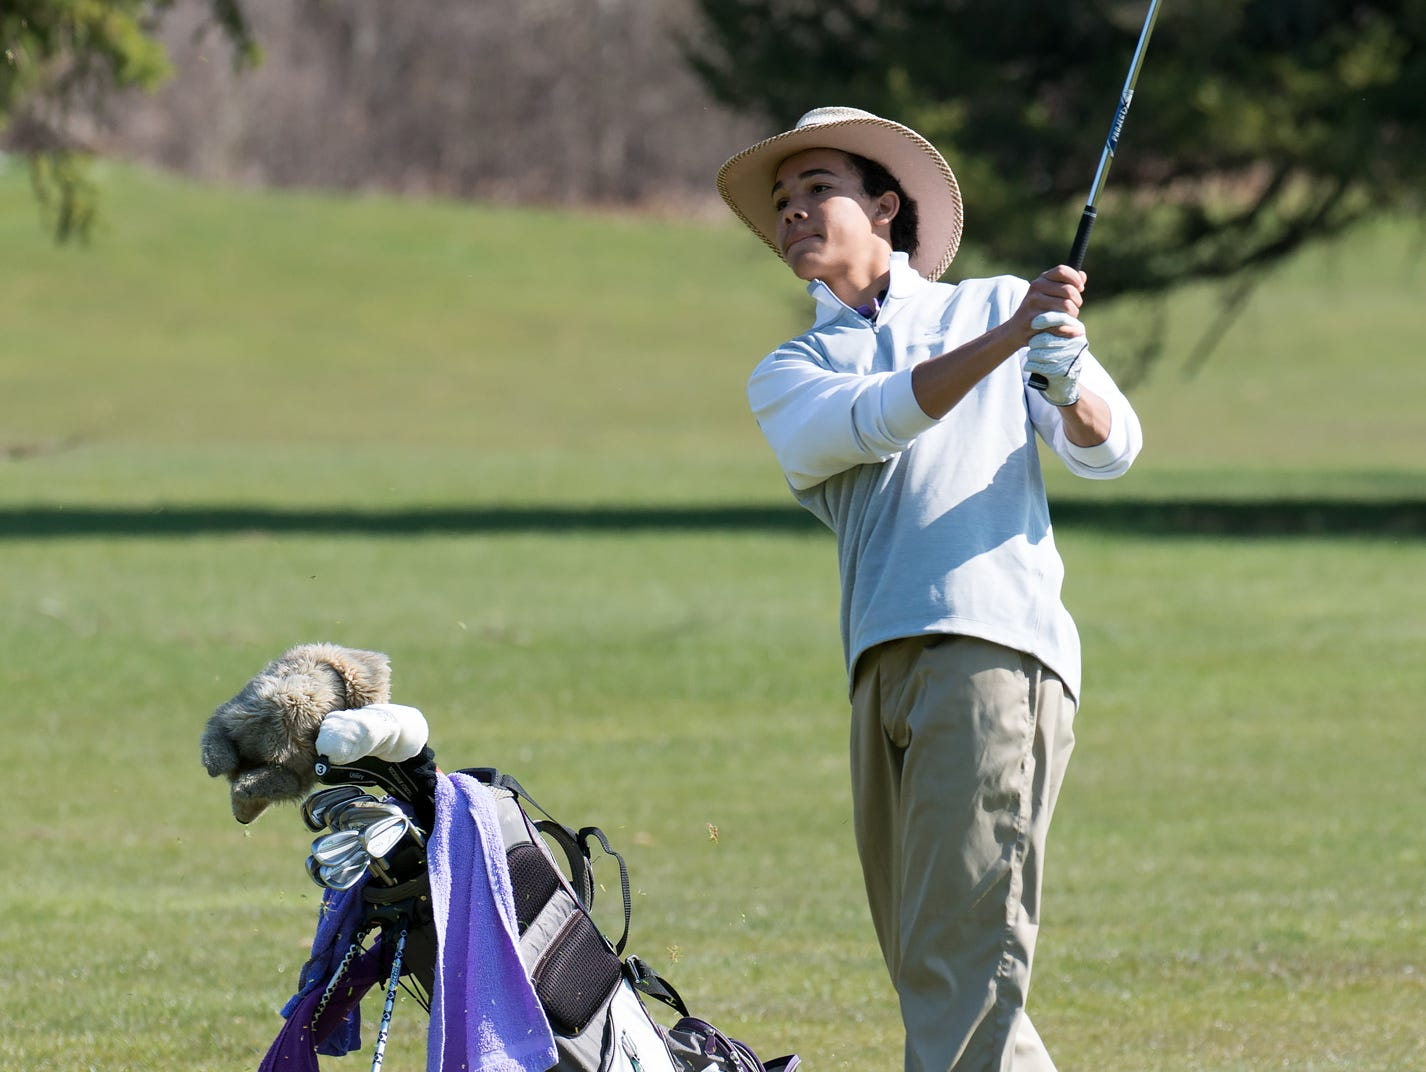 Lakeview's Andrew Walker chip-shots the green on the 12th hole Thursday afternoon at Cedar Creek golf course.